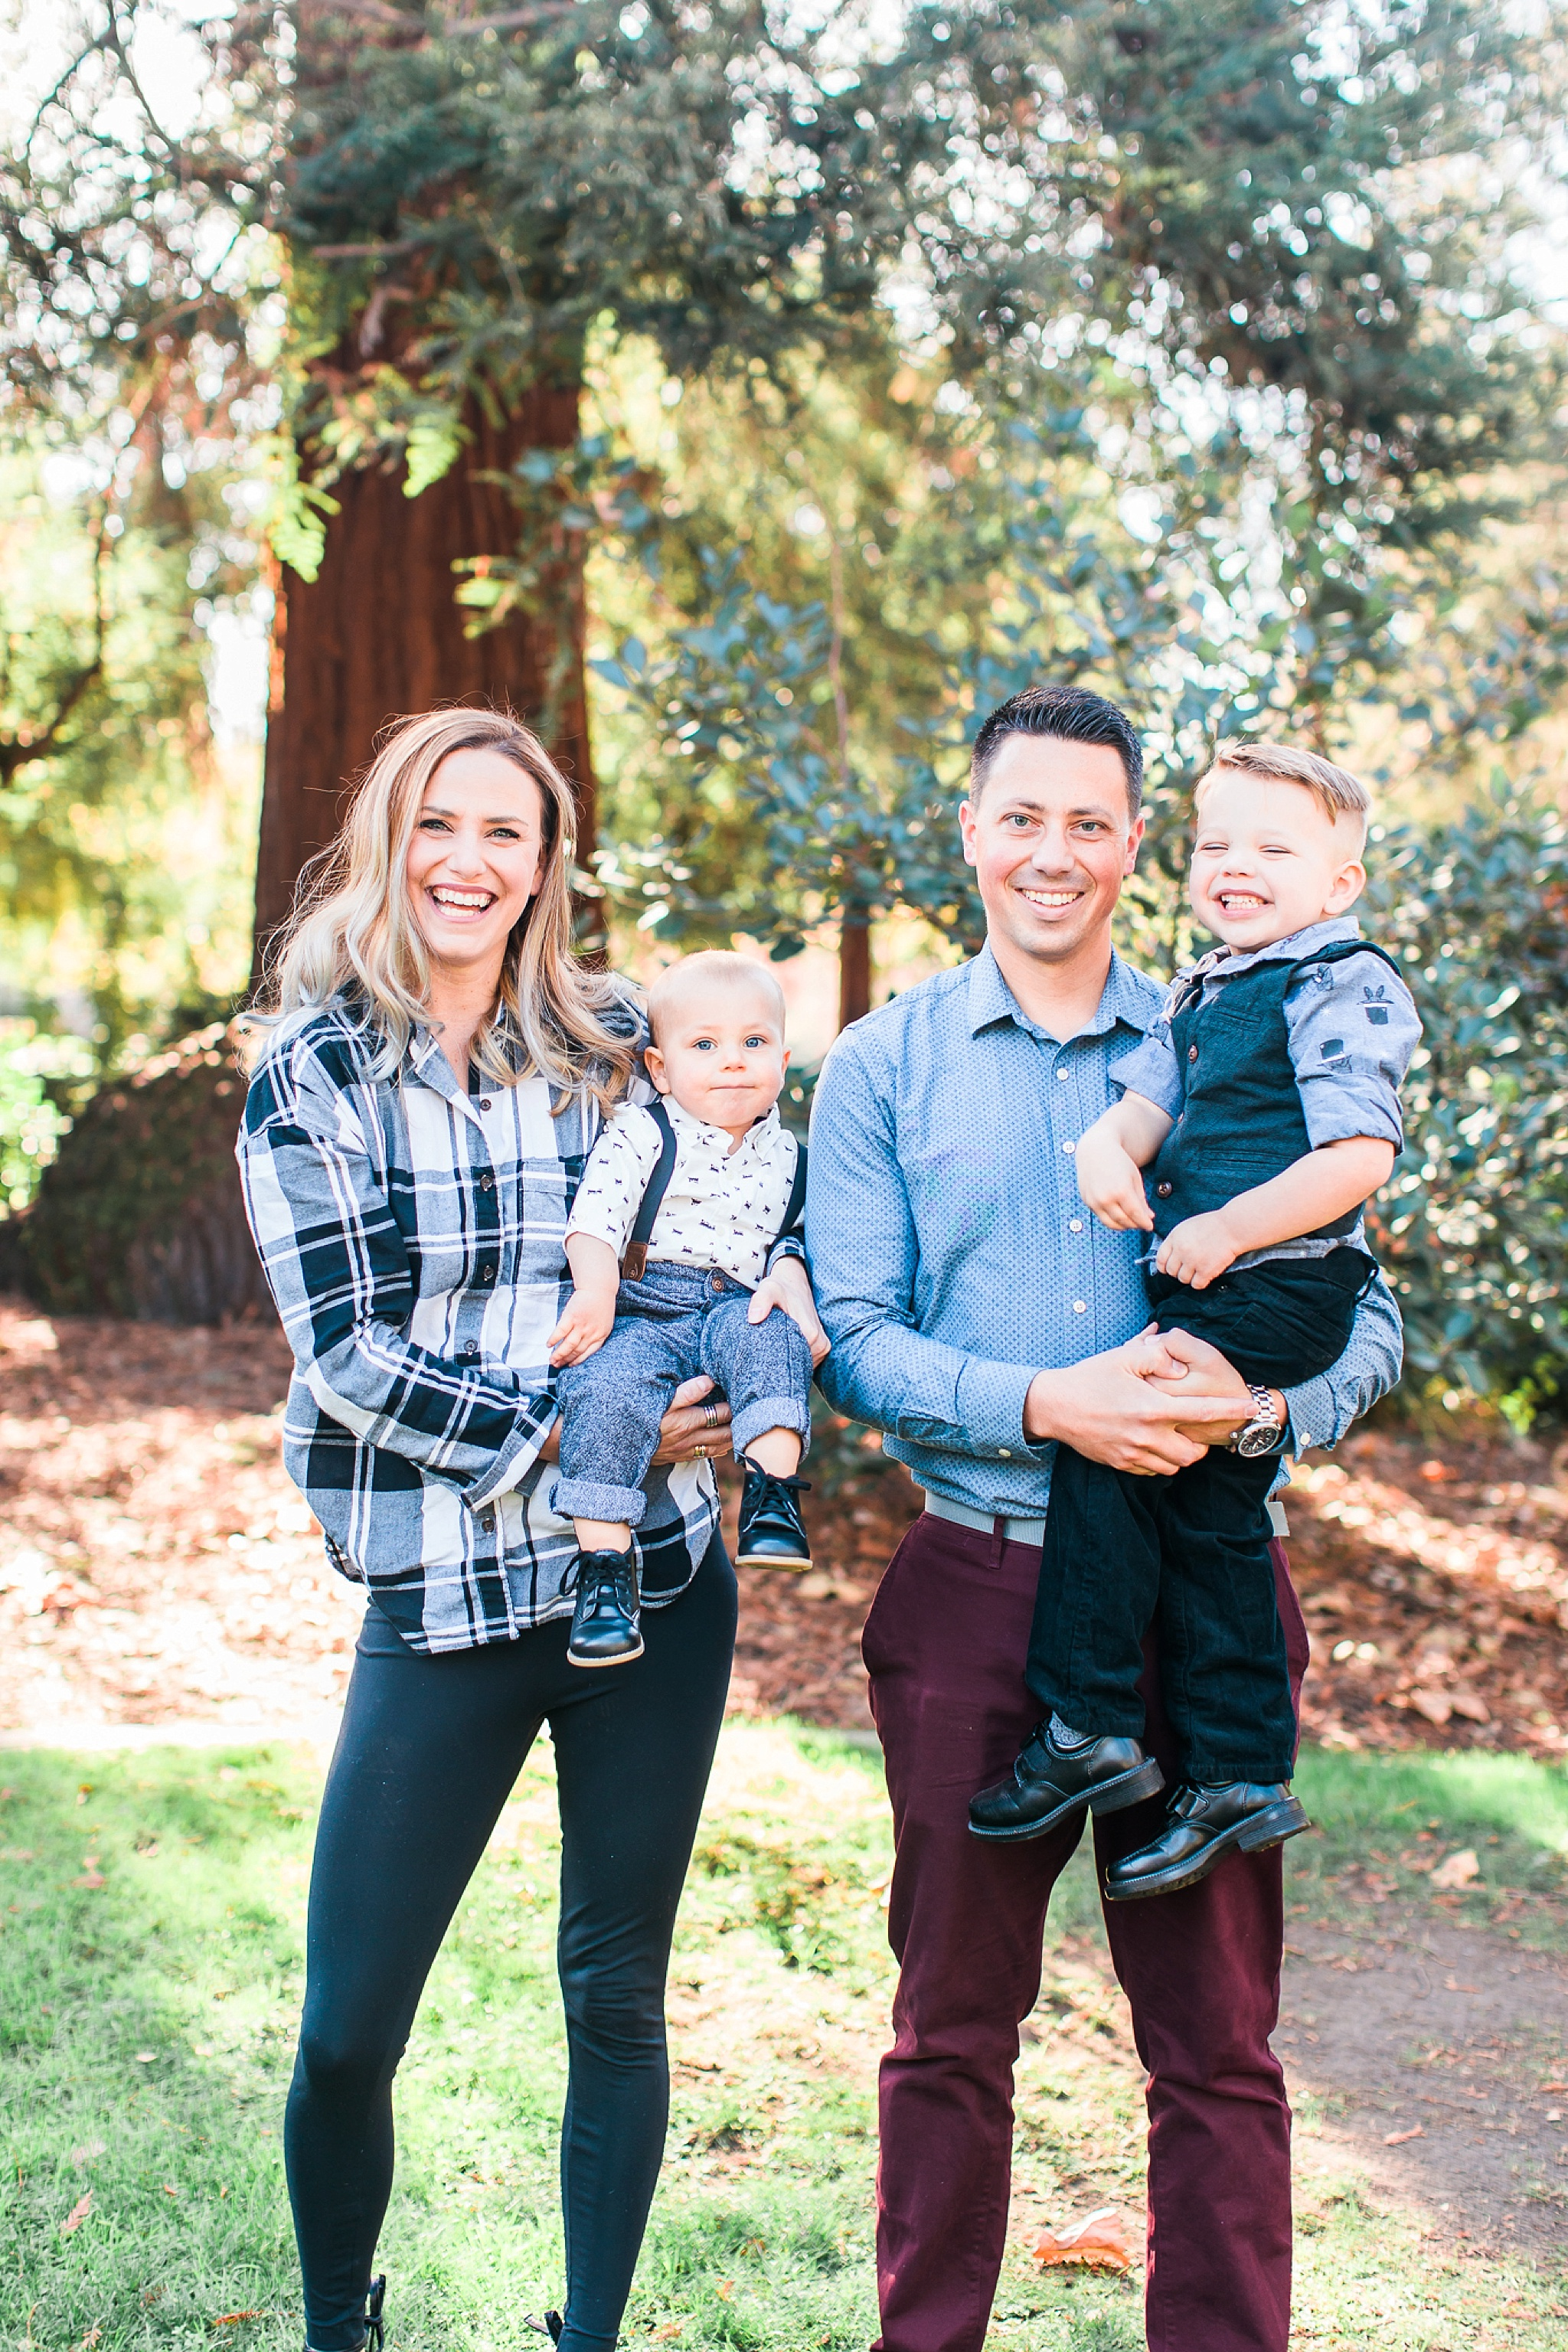 Claremont-Colleges-Family-Photos-8_WEB.jpg